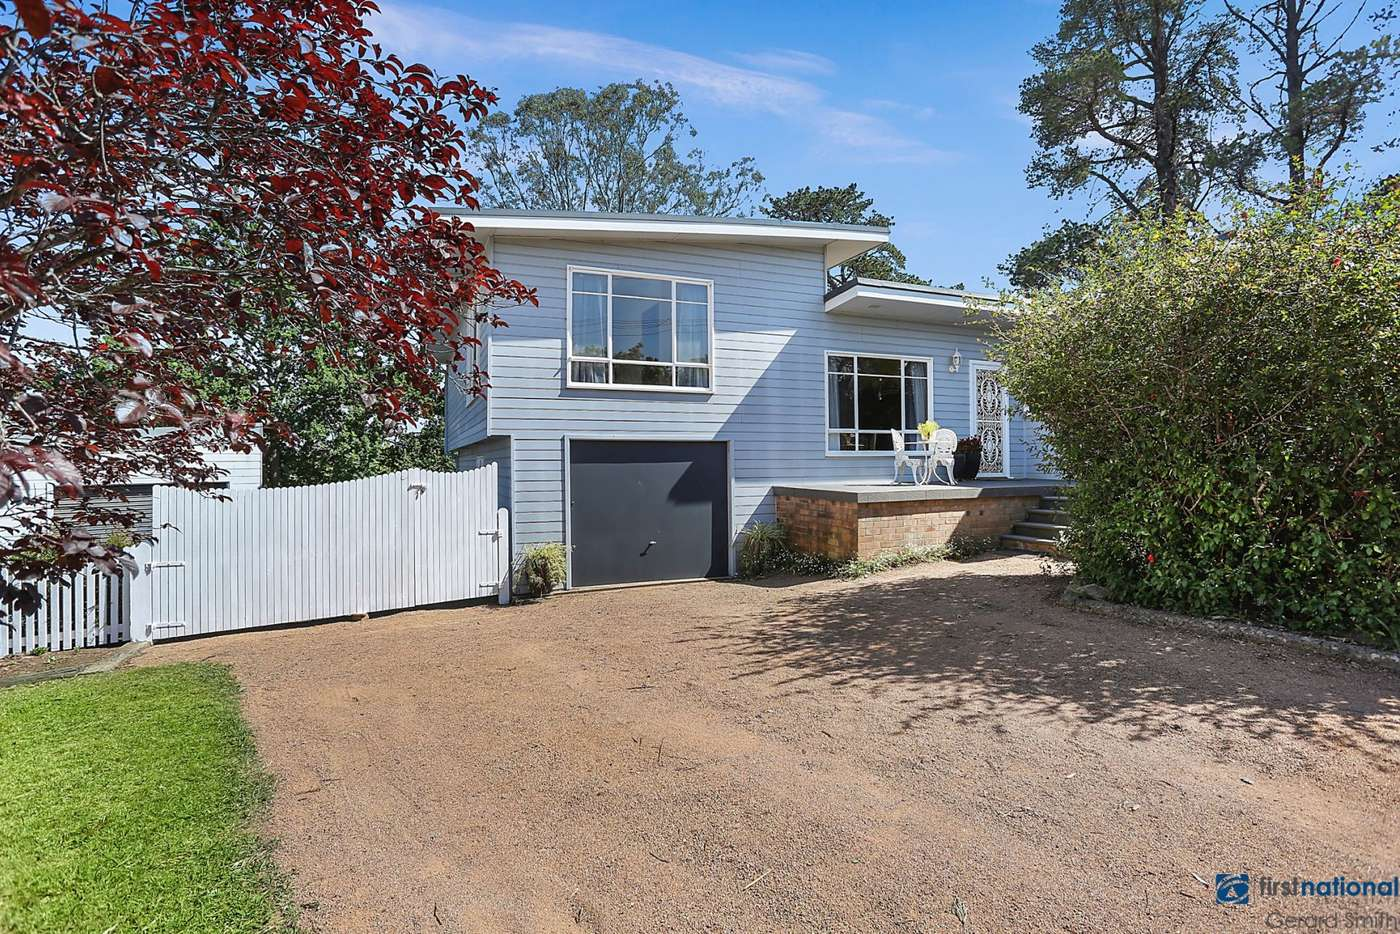 Main view of Homely house listing, 11 Struan Street, Tahmoor NSW 2573